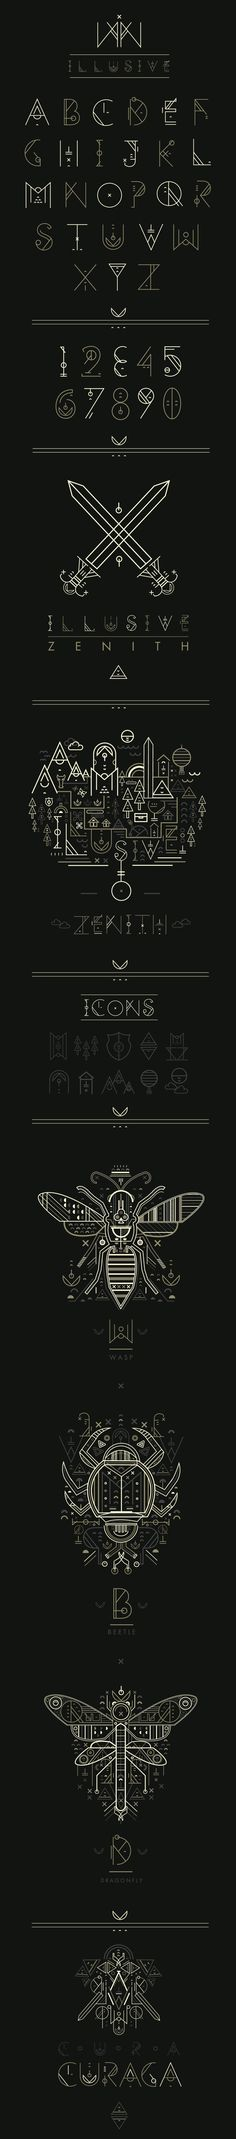 Design by studiosap, via Behance | #typography #design #alphabet The shapes and lines really go together and I love everything the typeface offers.